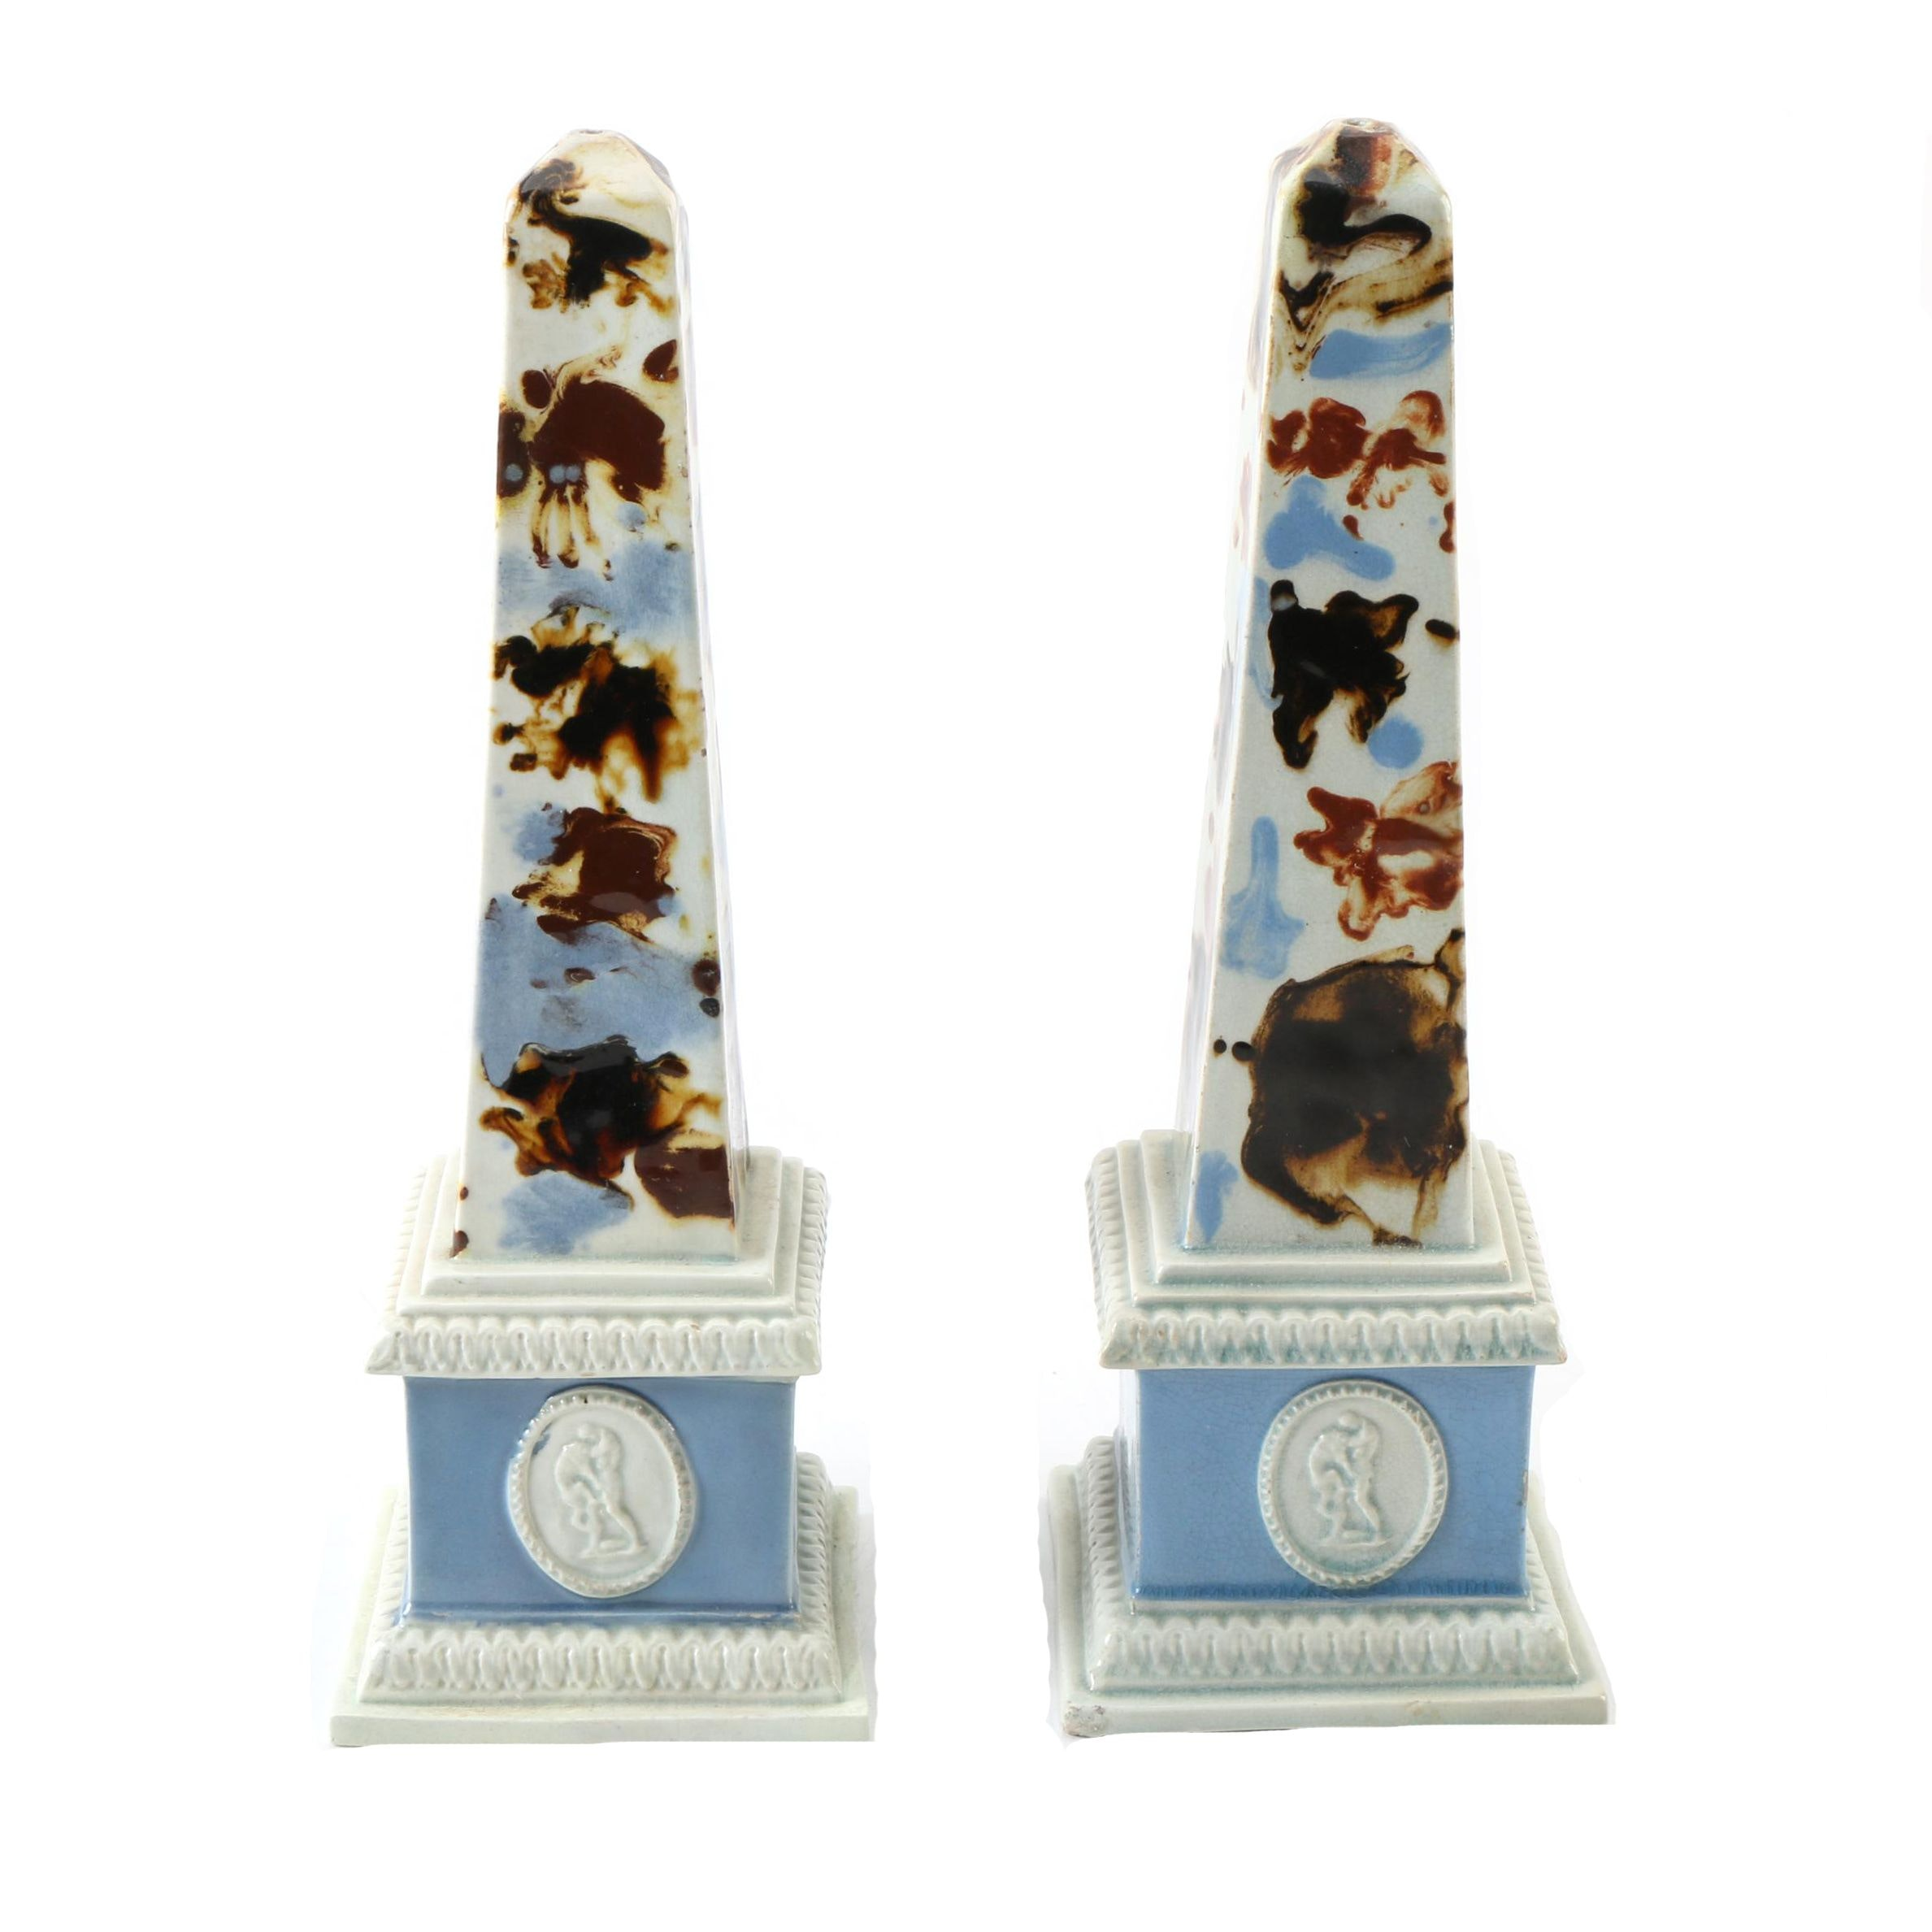 Pair of Antique English Pearlware Obelisks Circa 1785-90